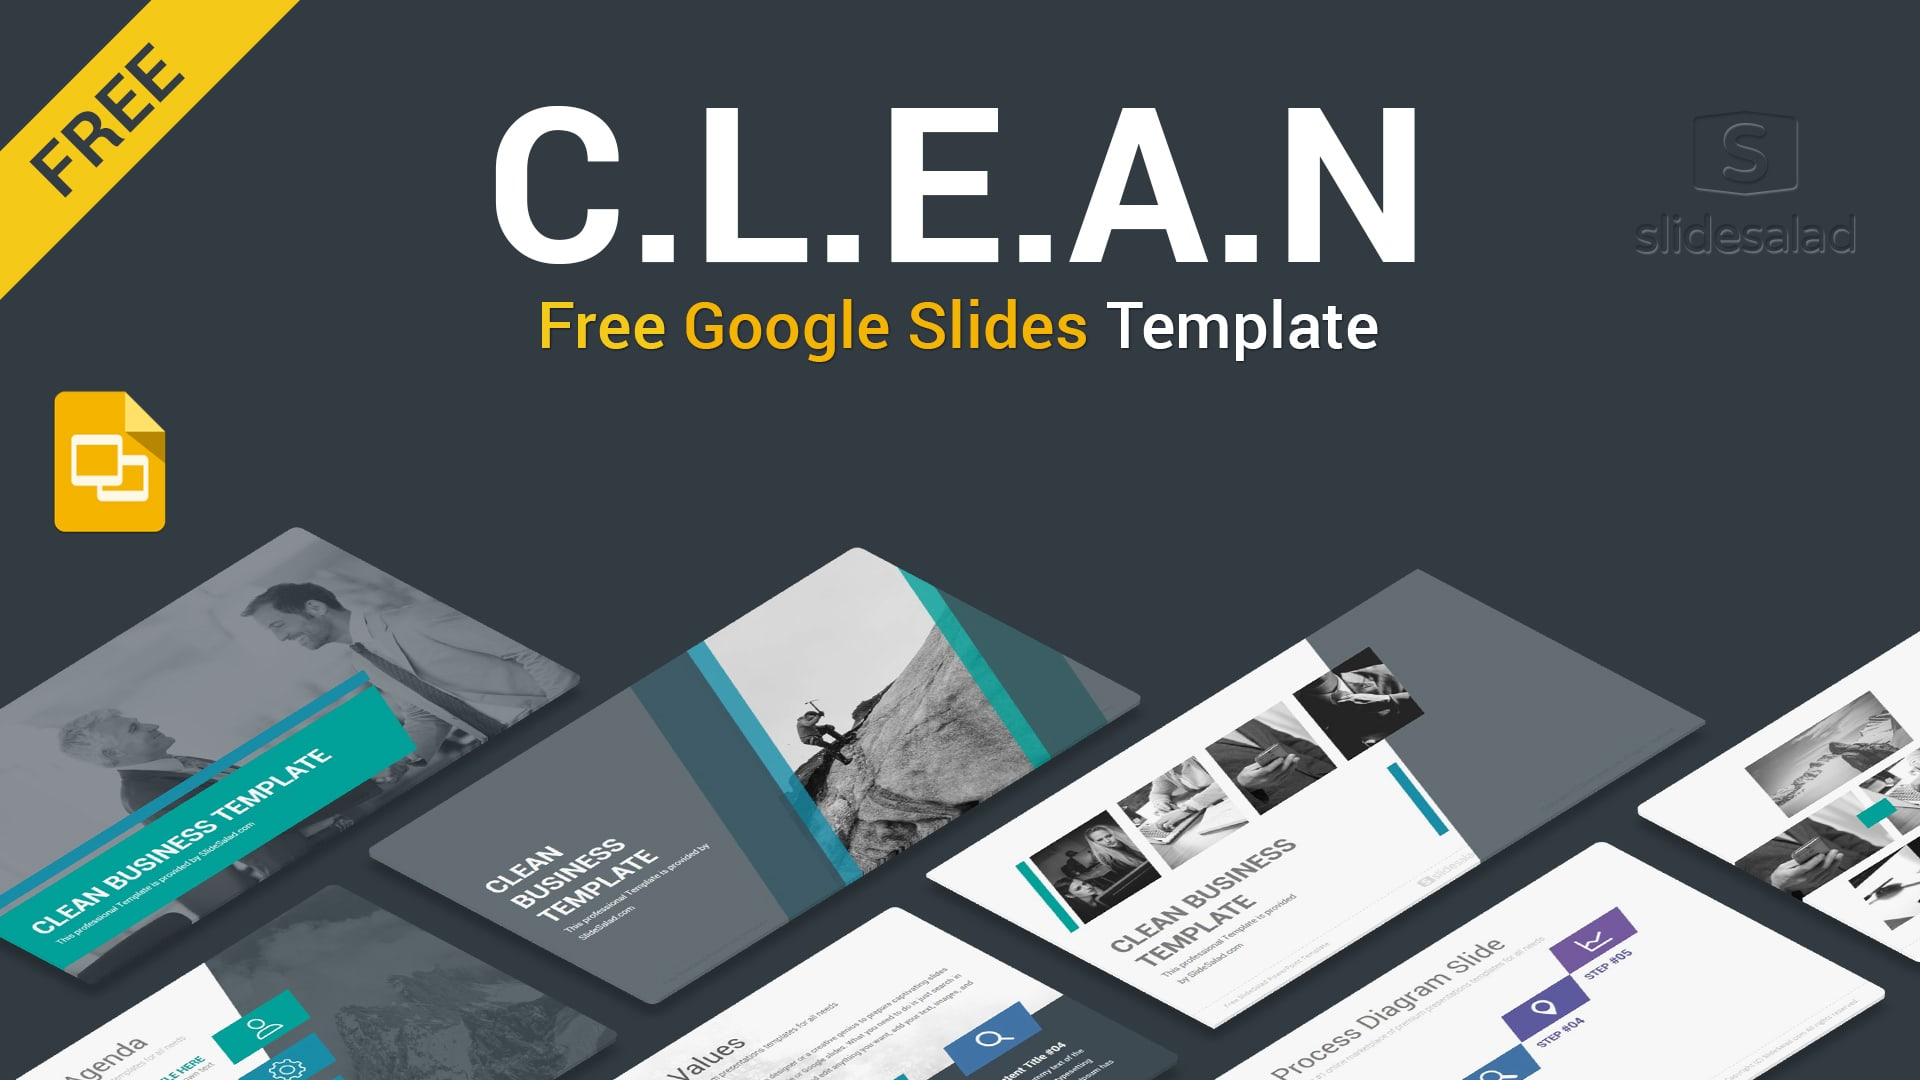 Clean Free Google Slides Template